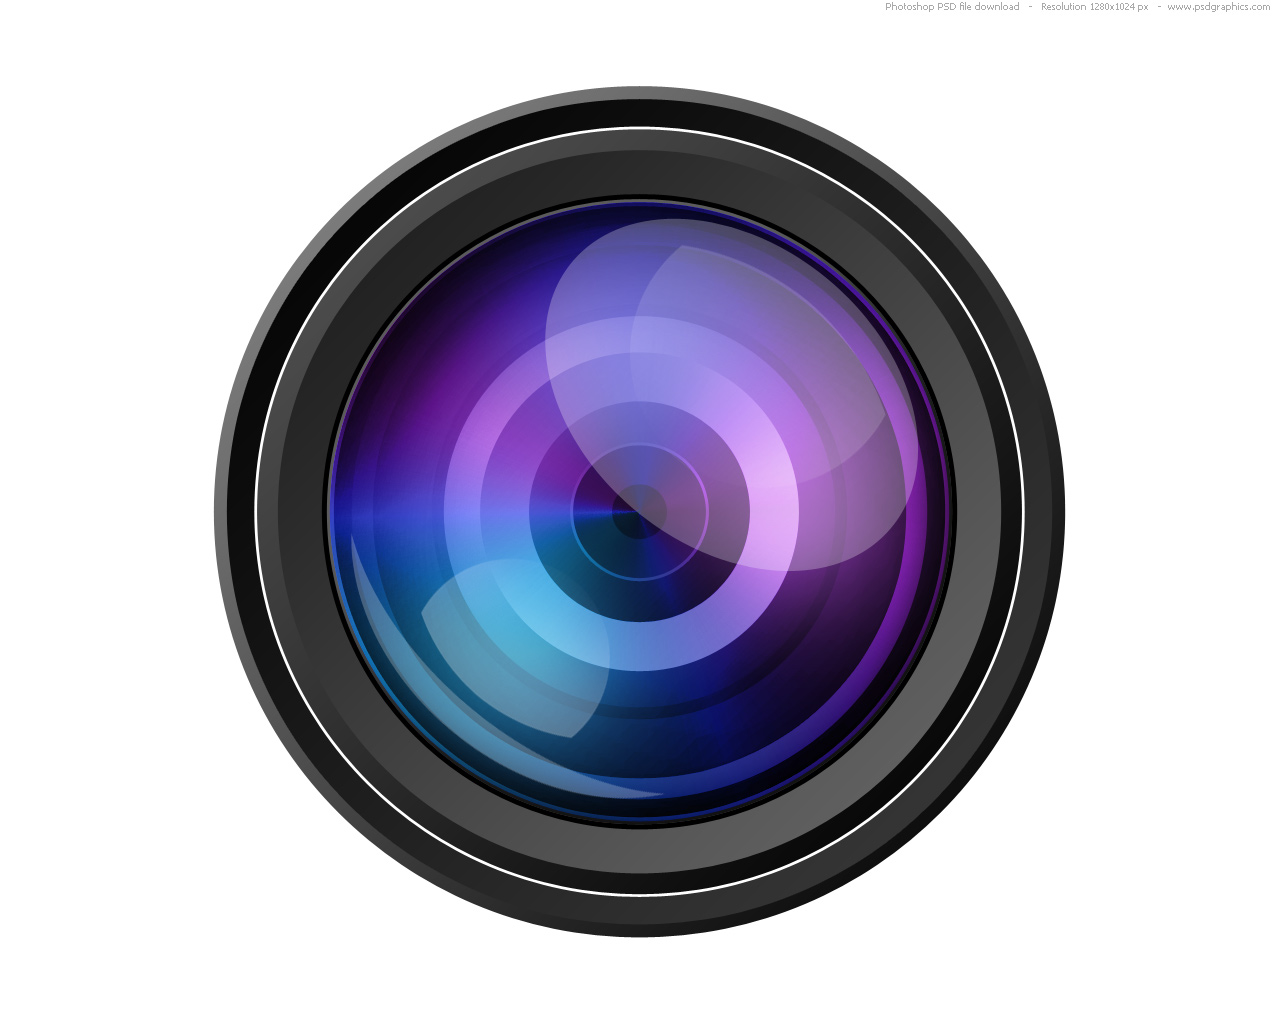 Keywords: professional photo lens illustration, perfect shoot concept, glossy objective graphic, lens refraction effect. Author: PSD Graphics